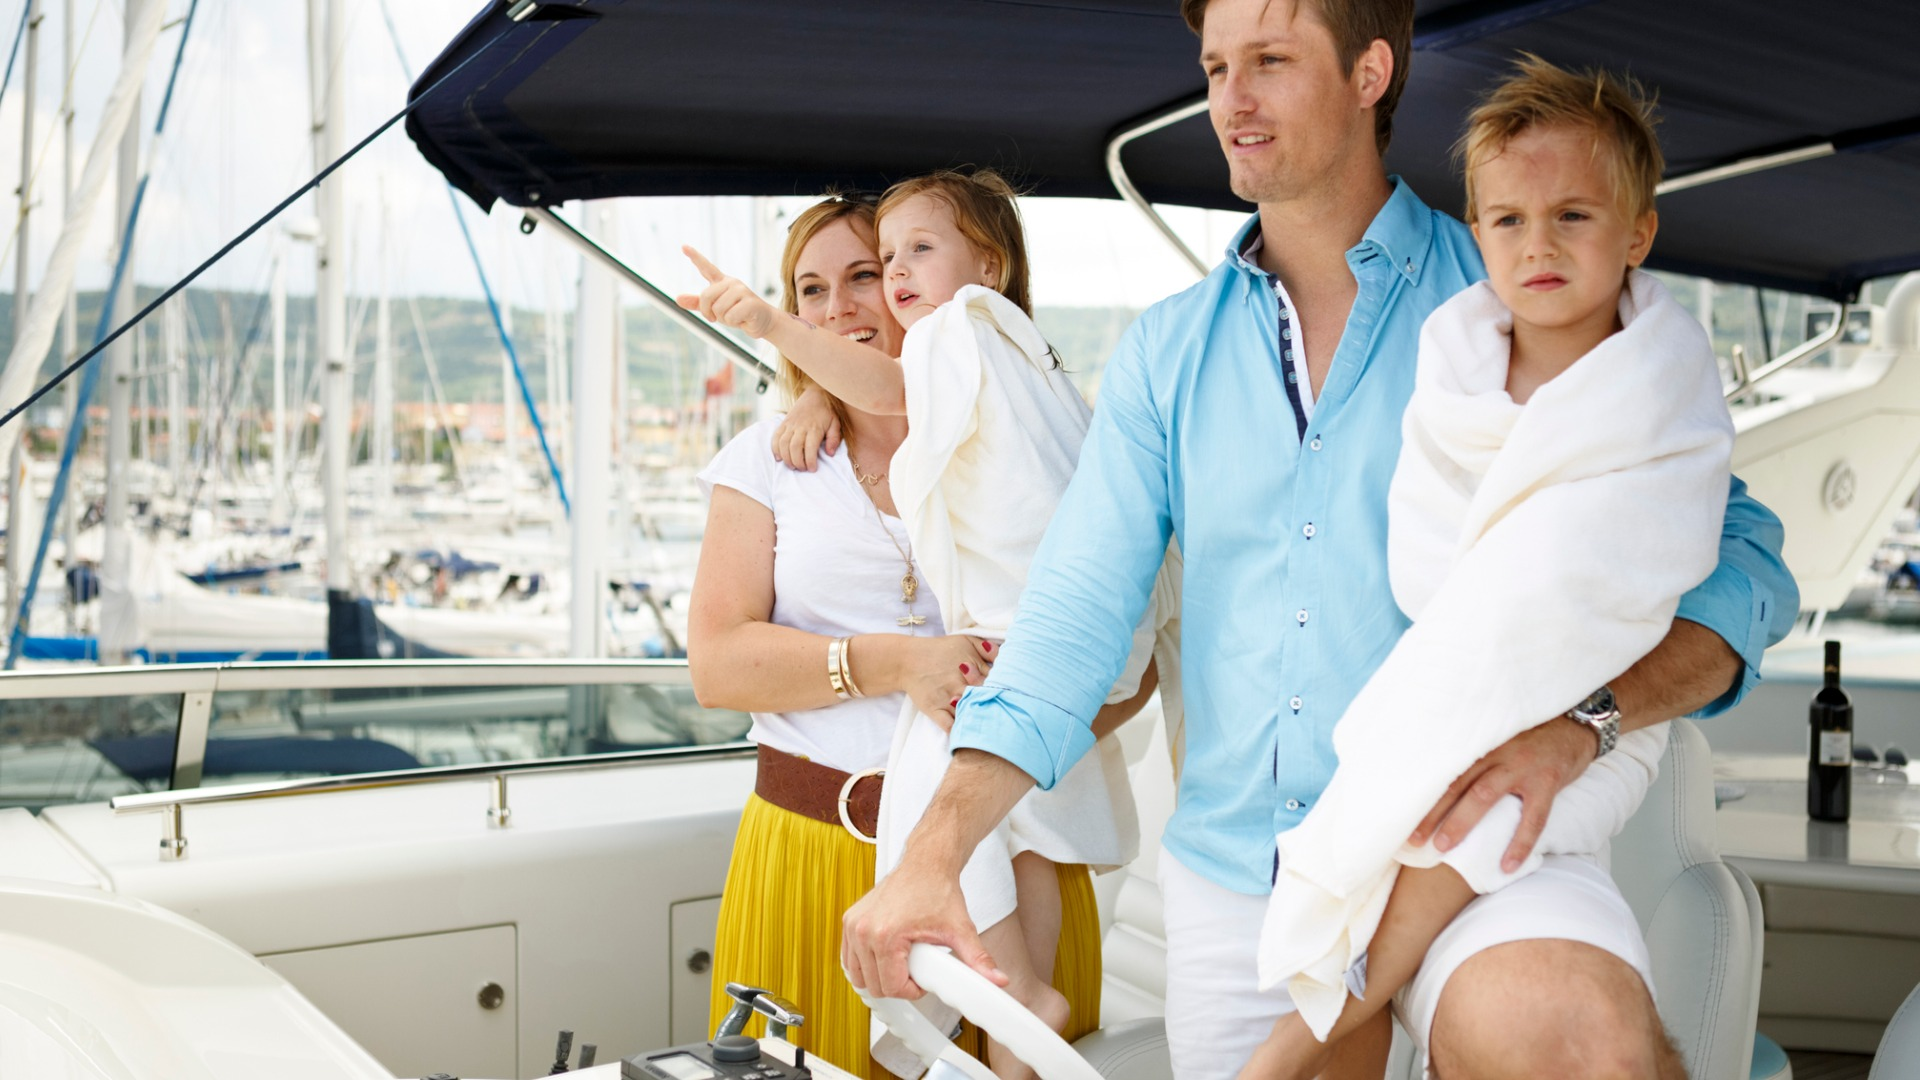 family-relaxing-on-yacht-for-holidays-picture-id517543708